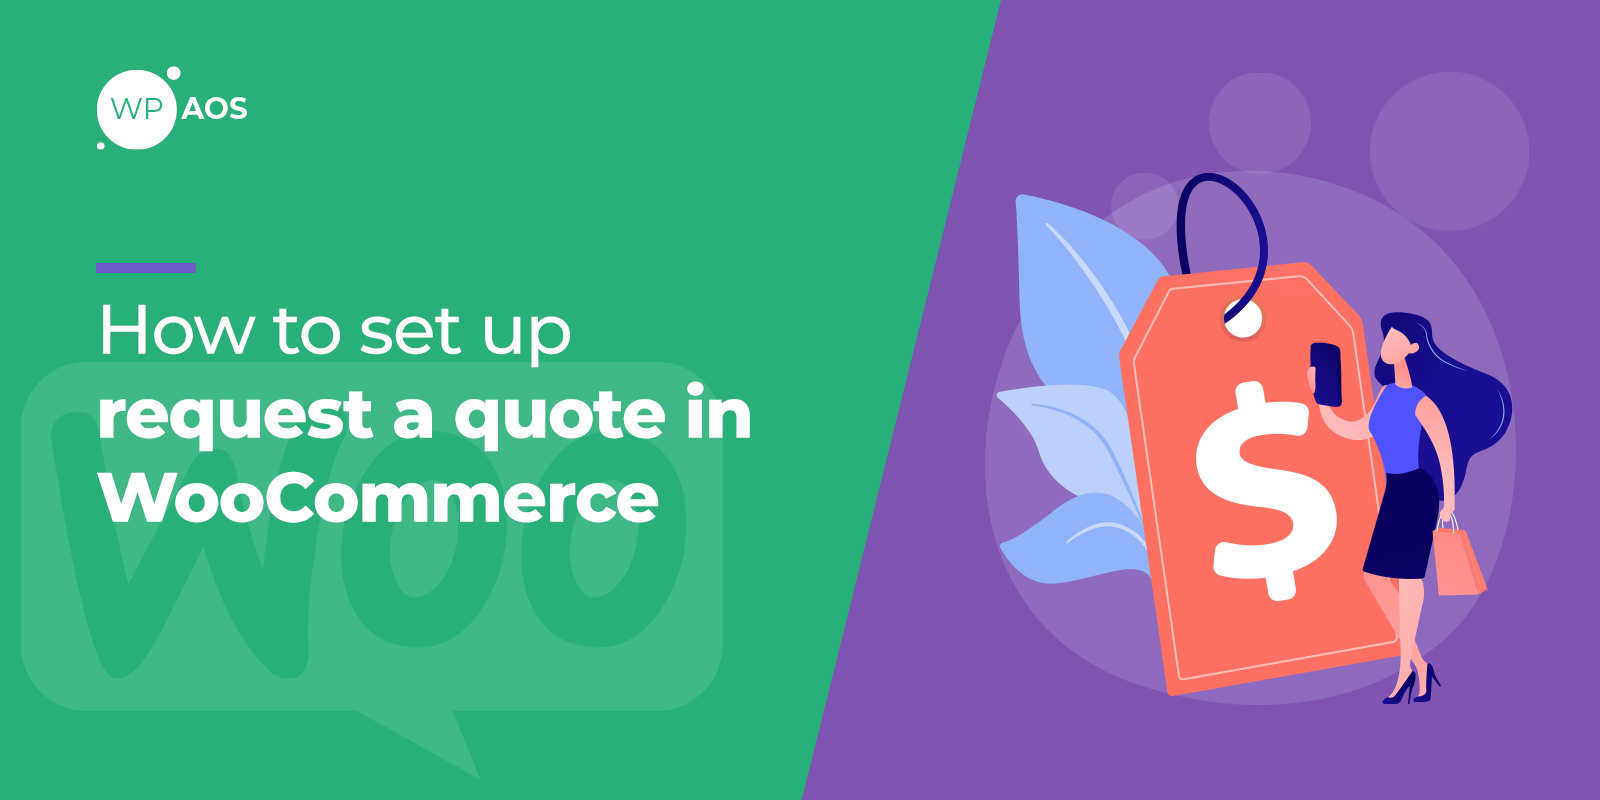 how-to-set-up-request-a-quote-in-woocommerce